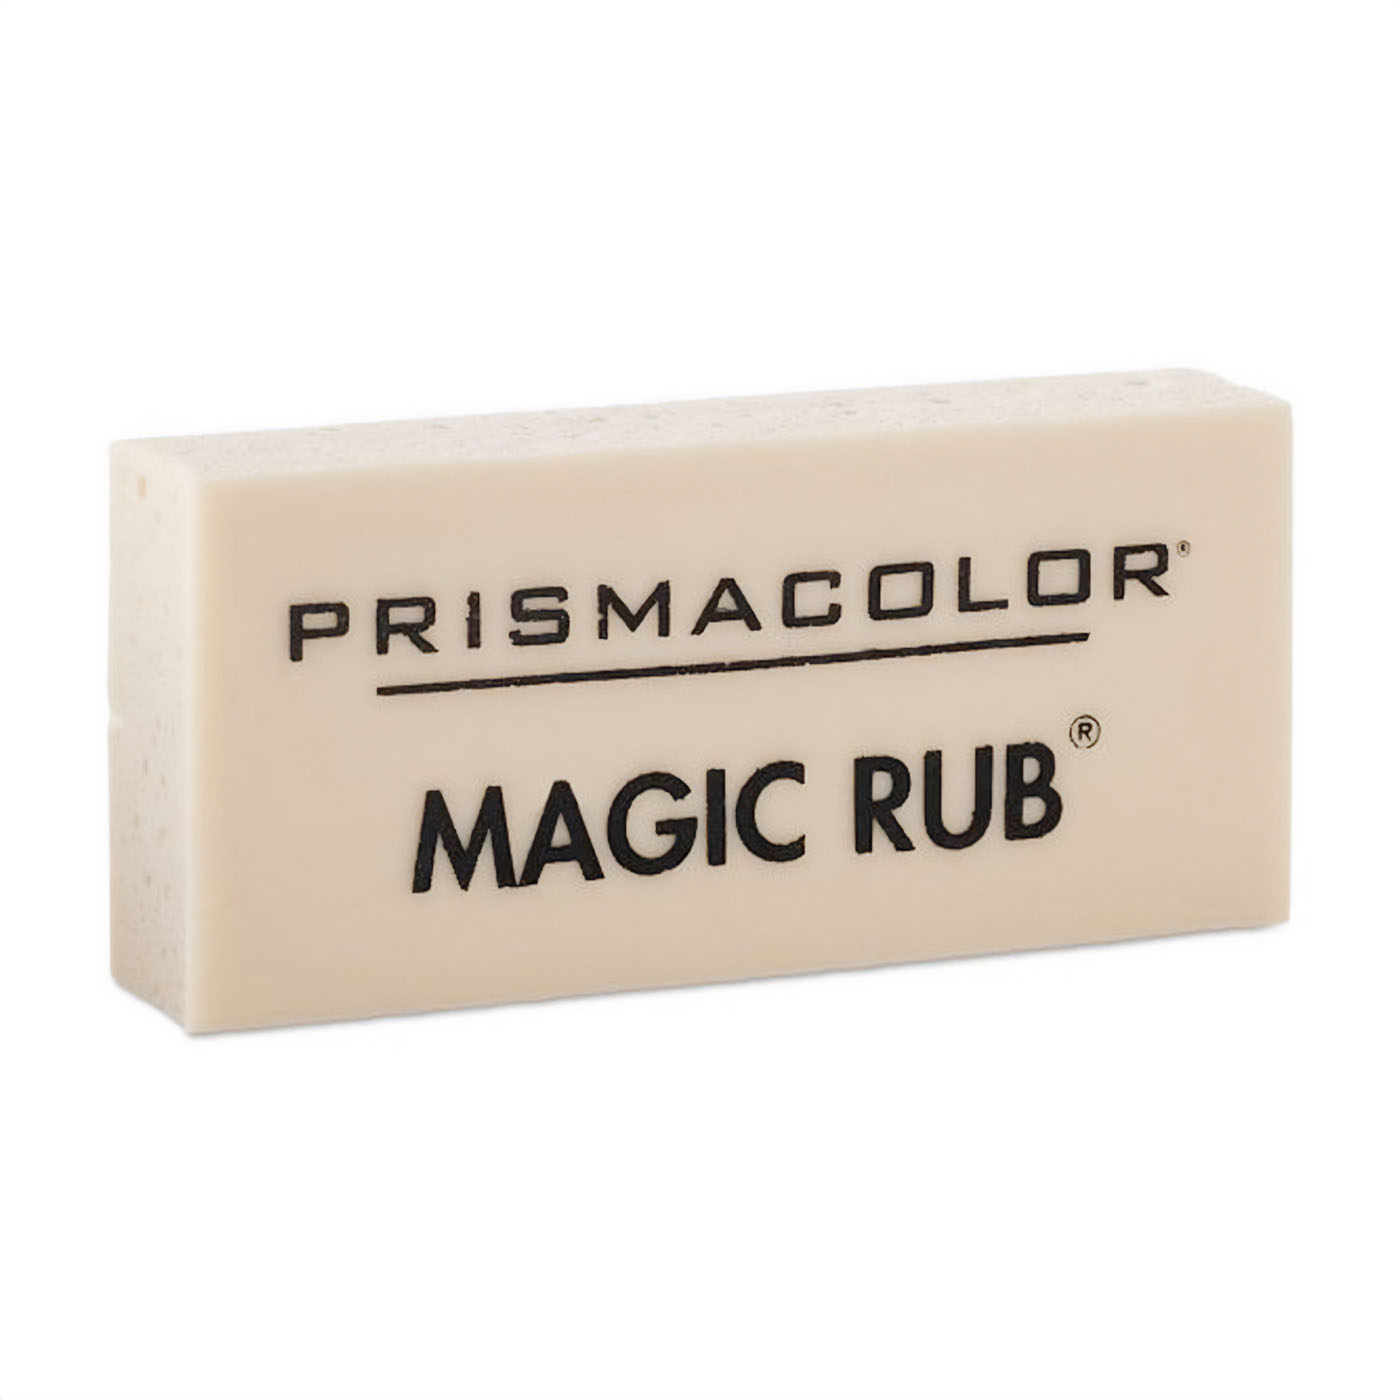 Prismacolor White Vinyl Magic Rub Eraser